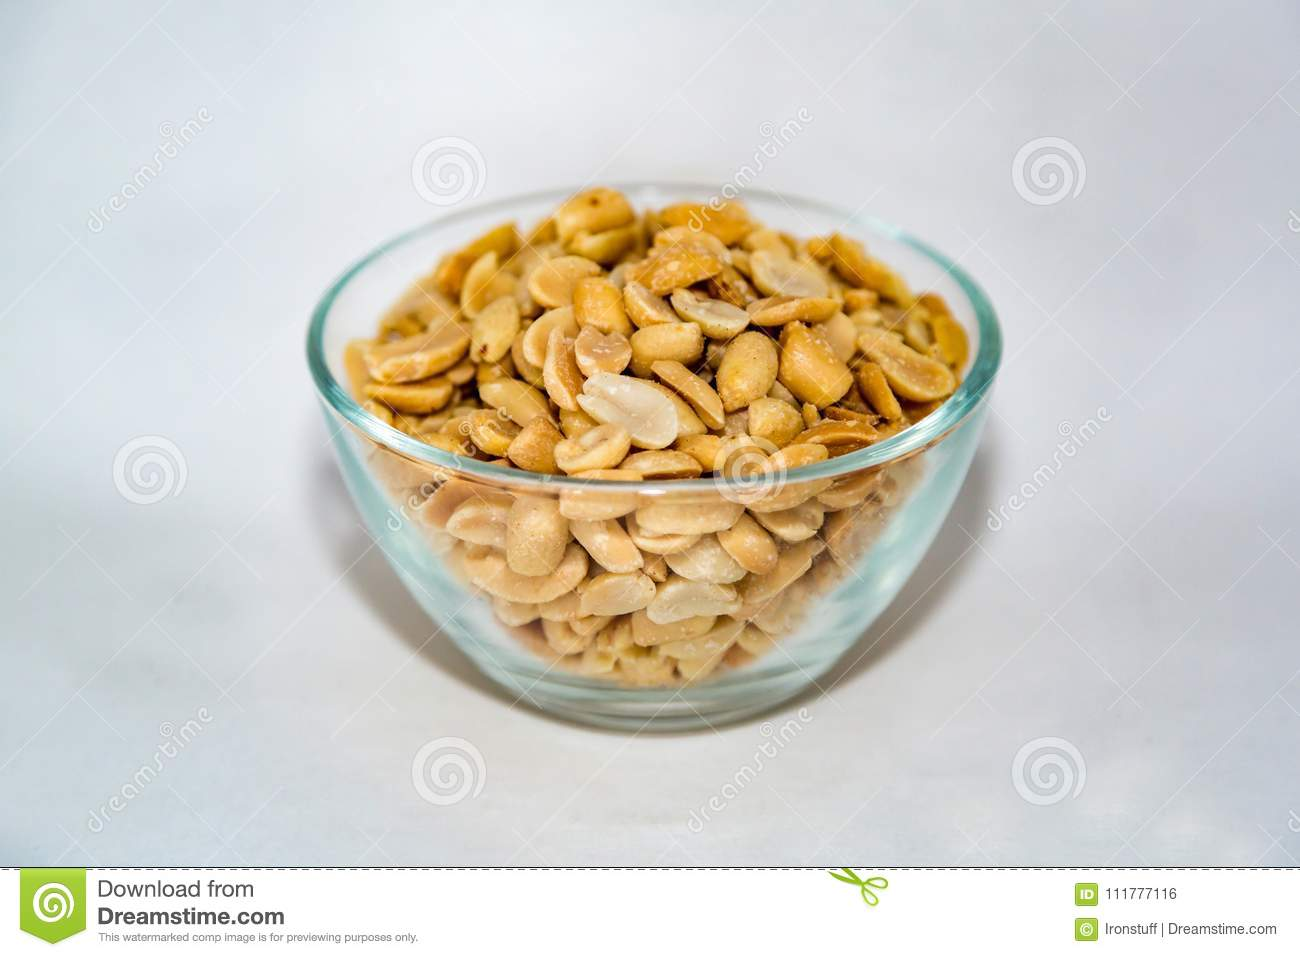 Peanuts in a glass bowl